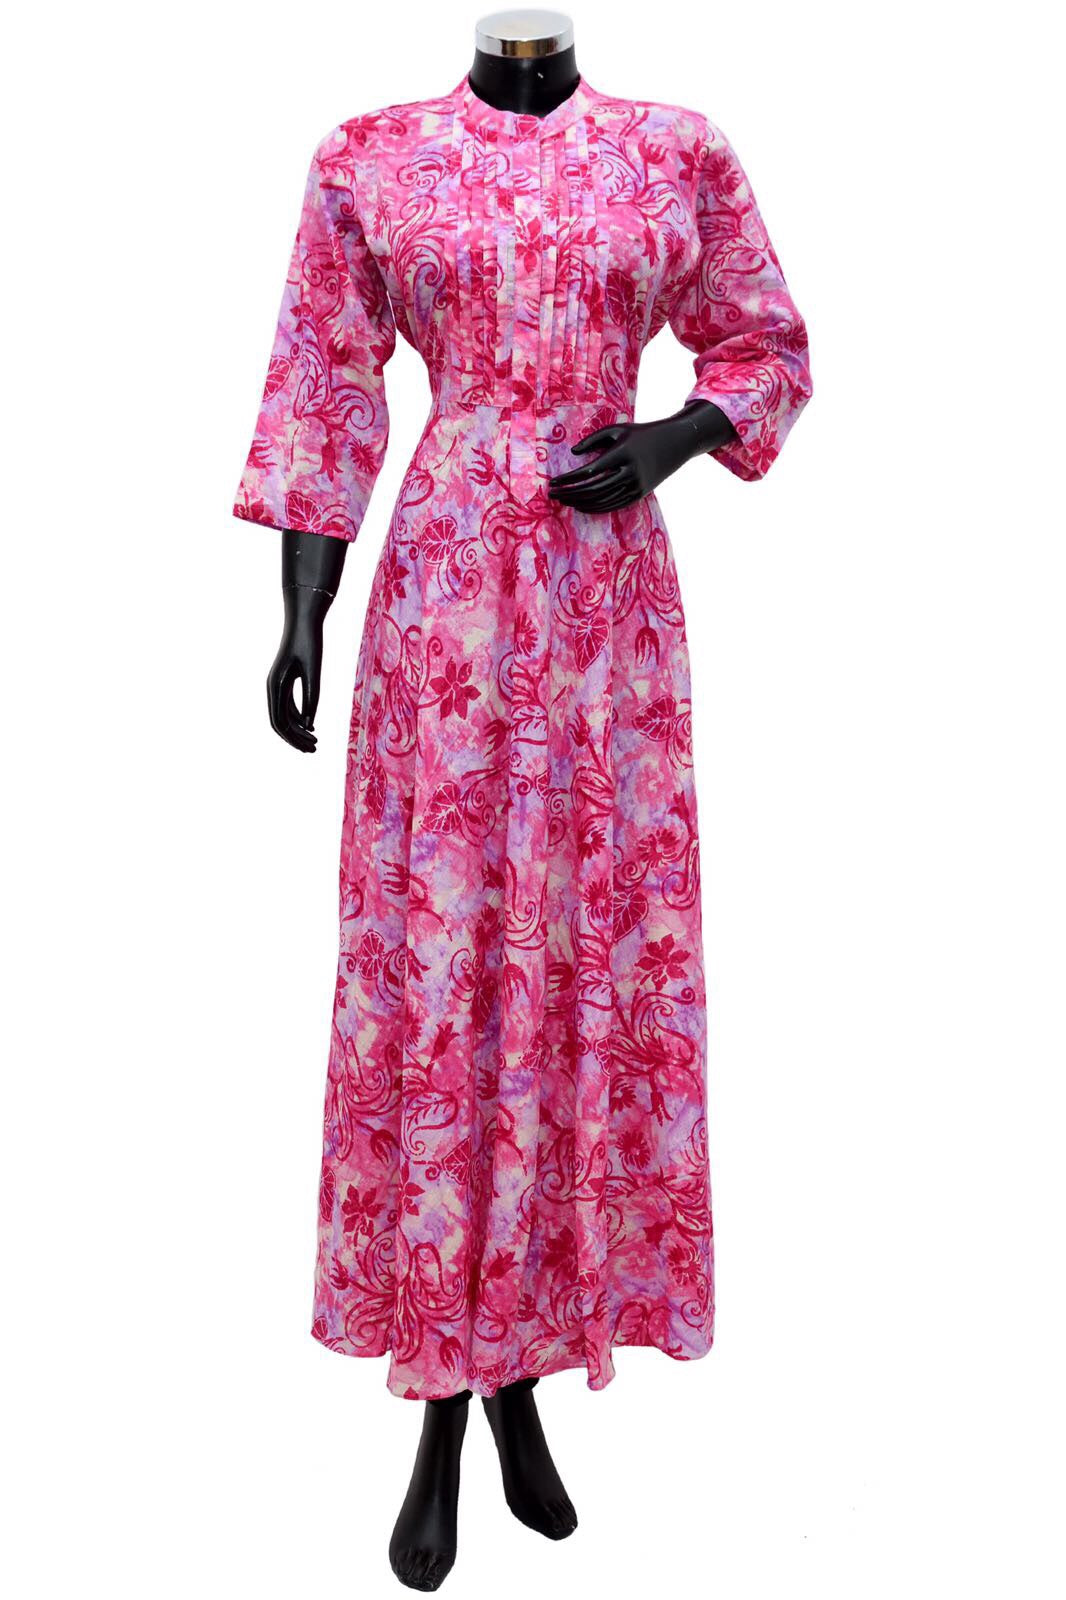 Long maxi dress#fdn751-191